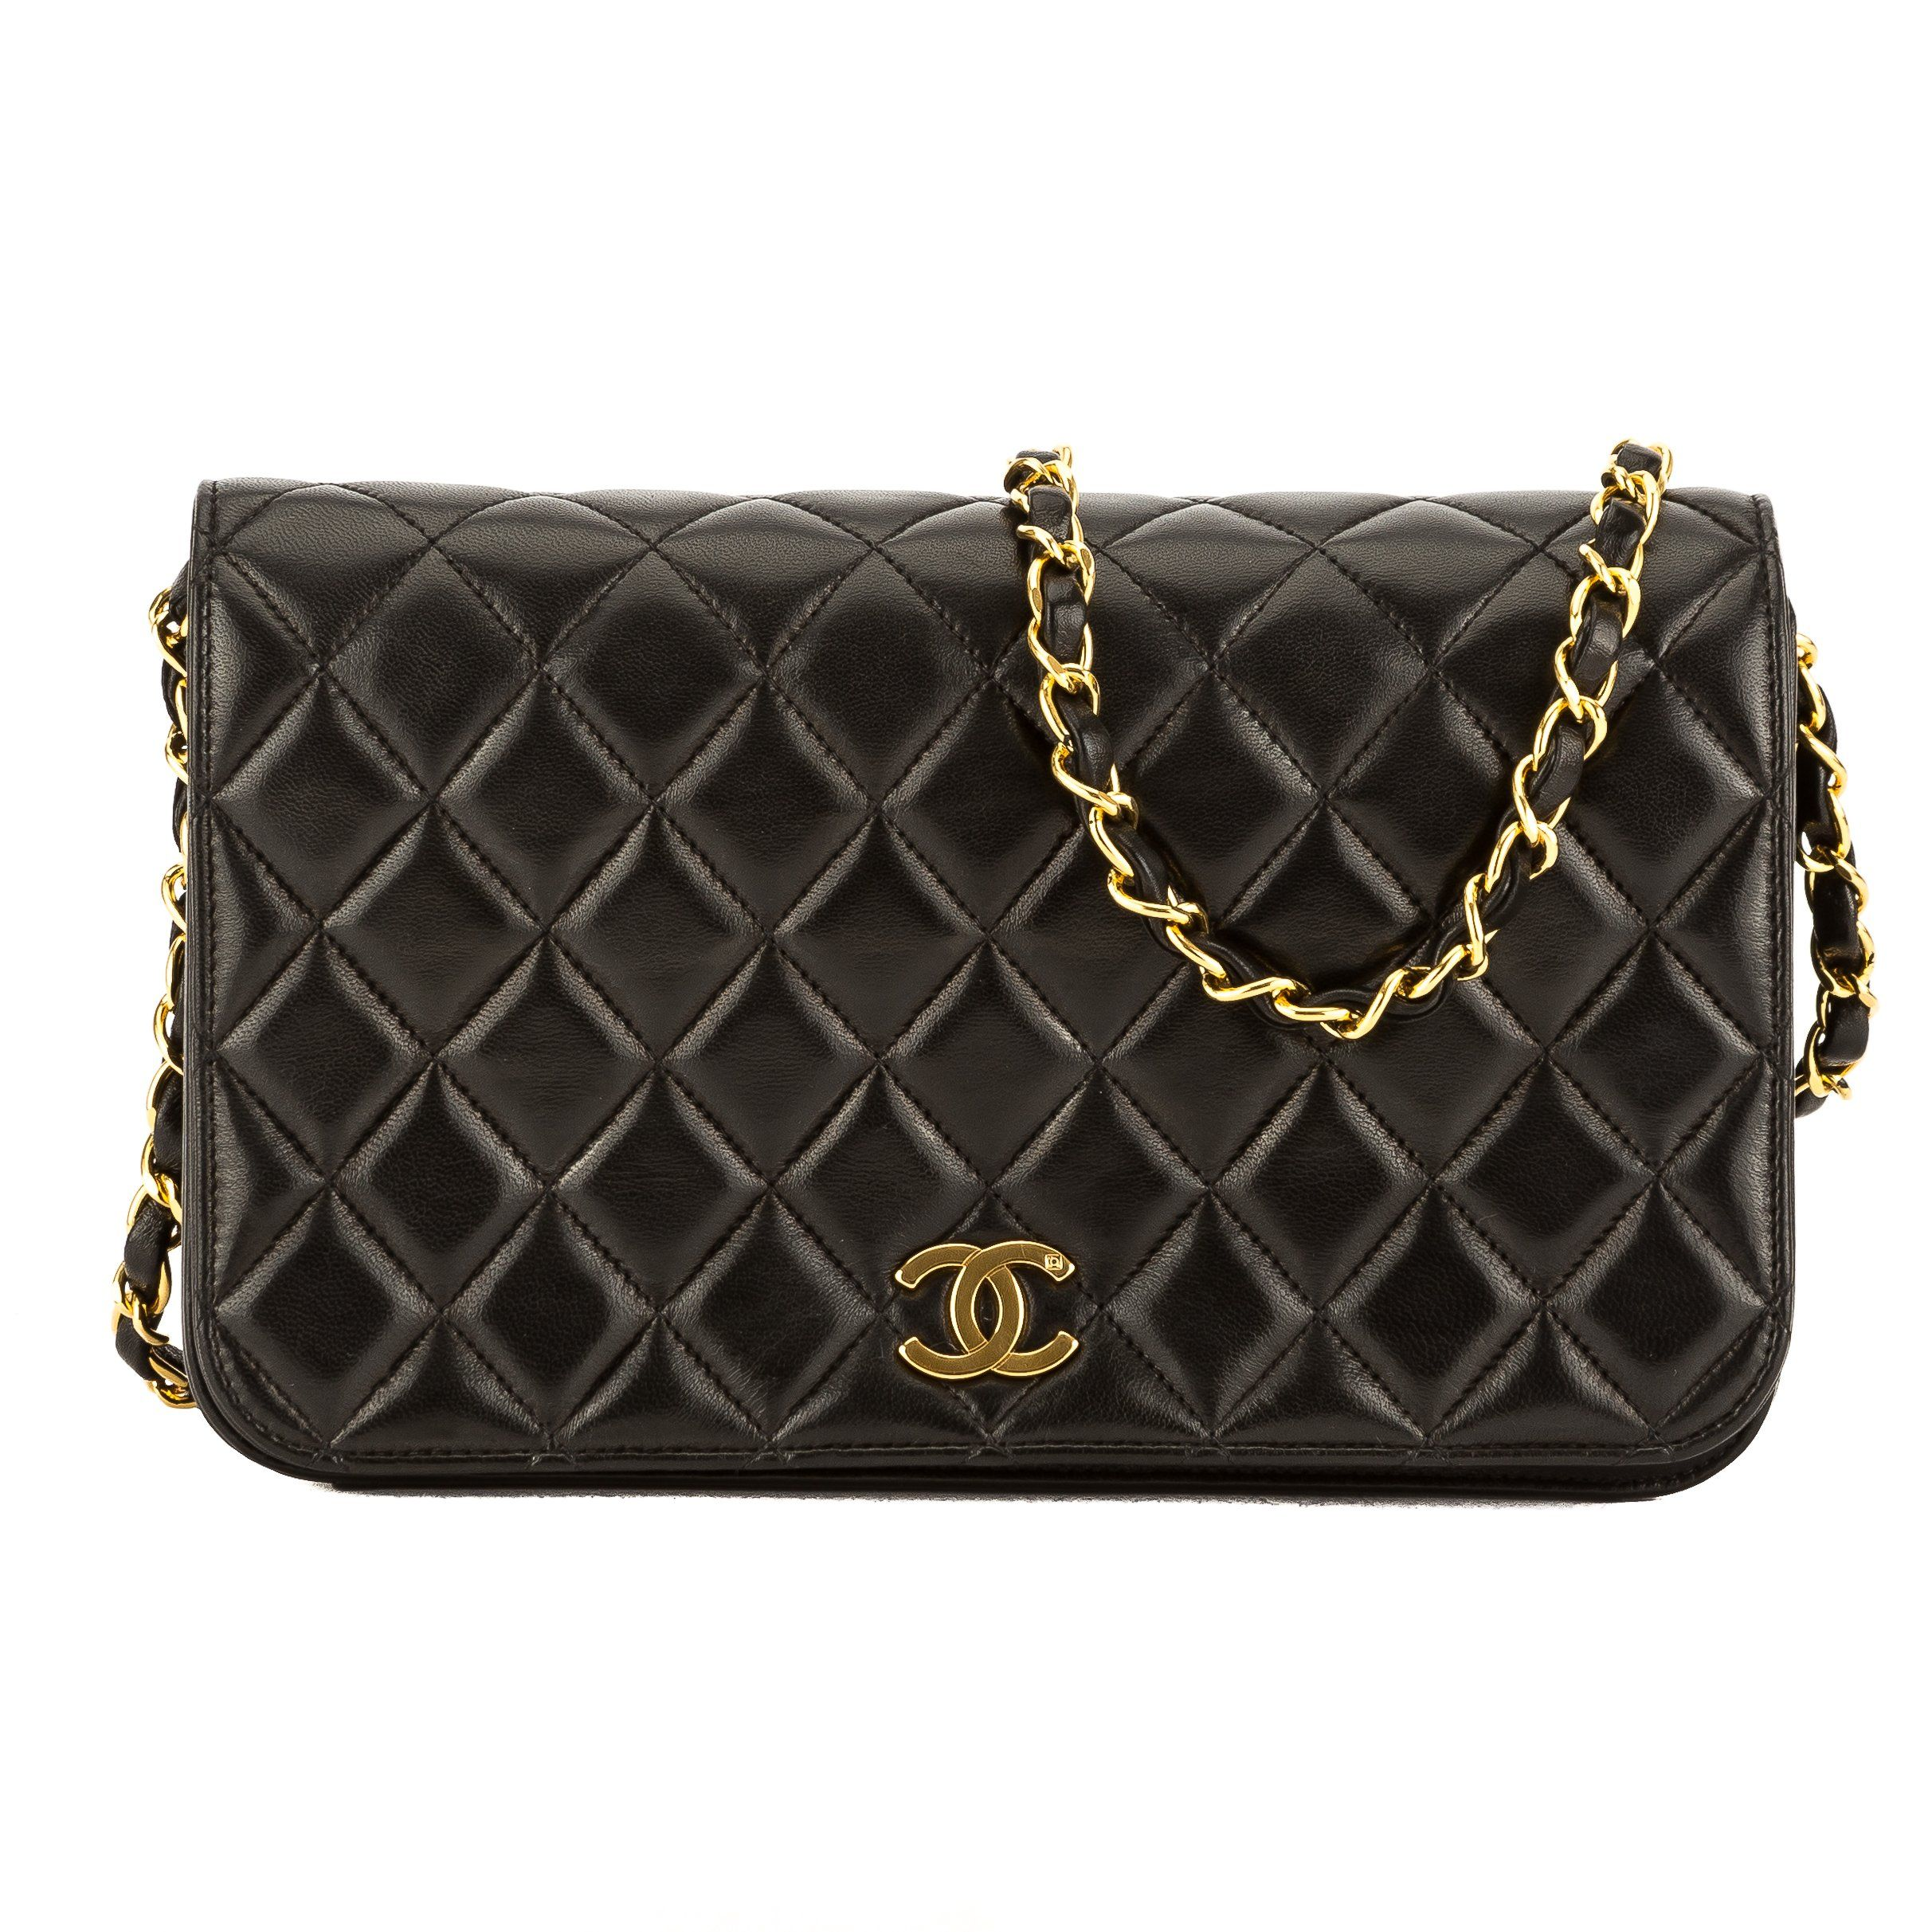 8831c496b9fb Chanel Black Quilted Lambskin Leather Chain Clutch Bag (Pre Owned ...